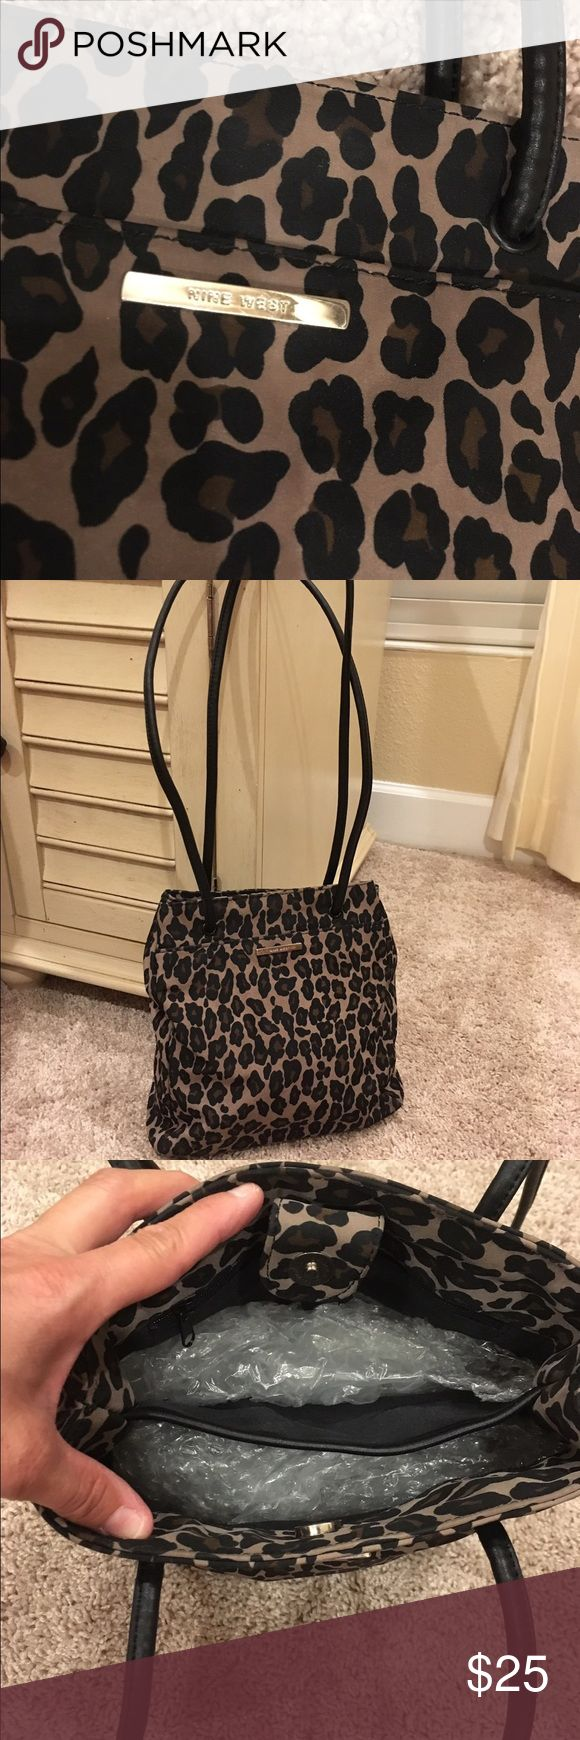 Nine West Leopard Purse w/Phone Holder Very nice Bag and Phone Case. From Clean Smoke Free Home Nine West Bags Shoulder Bags